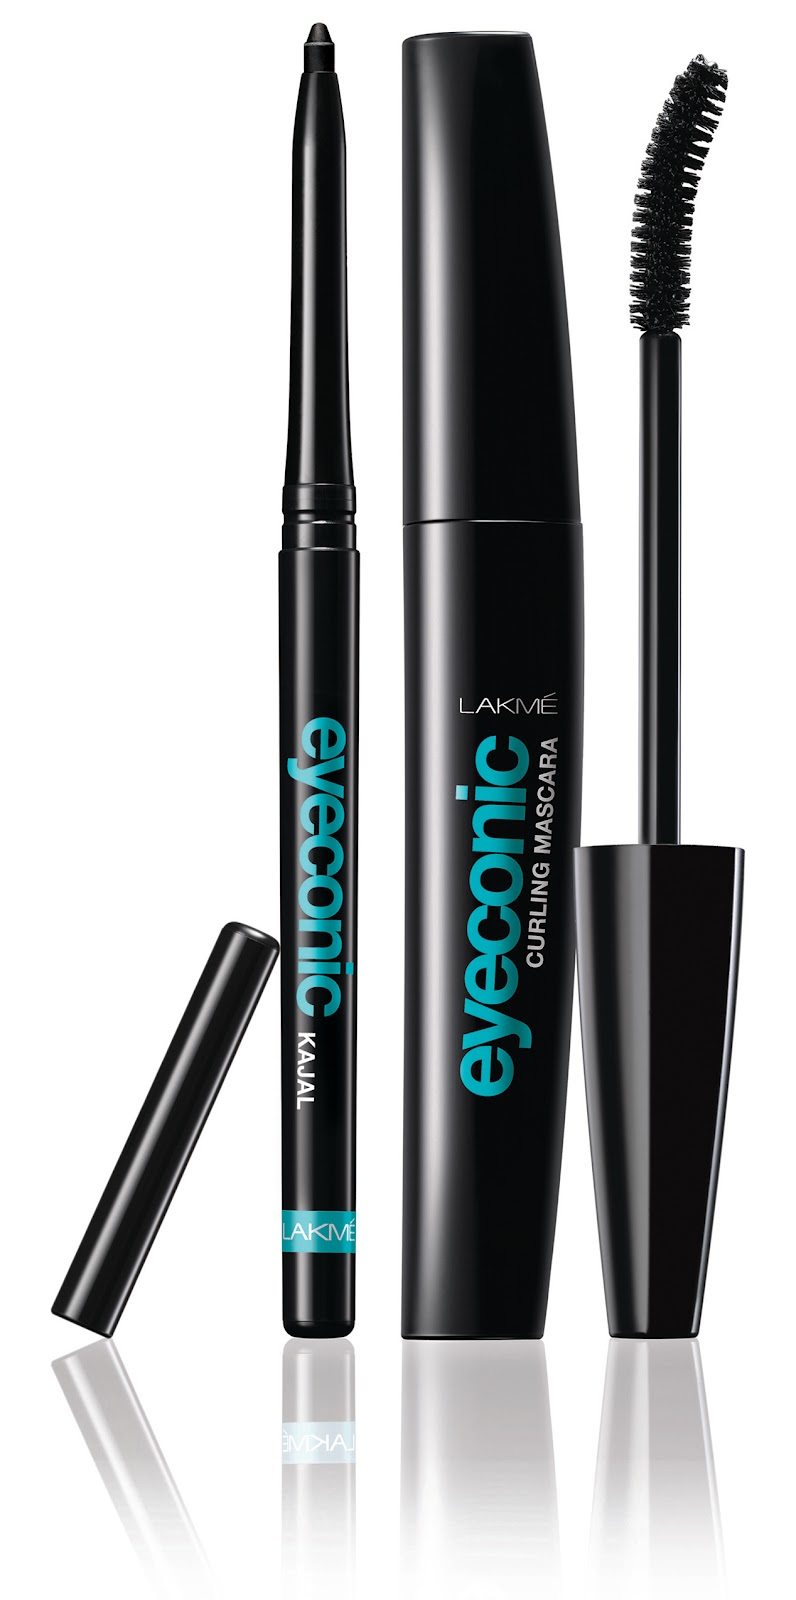 lakme cosmetics Welcome to the official channel of lakme india from salon expertise, skincare solutions and profesional make up, get non-stop insights on beauty, fashion.